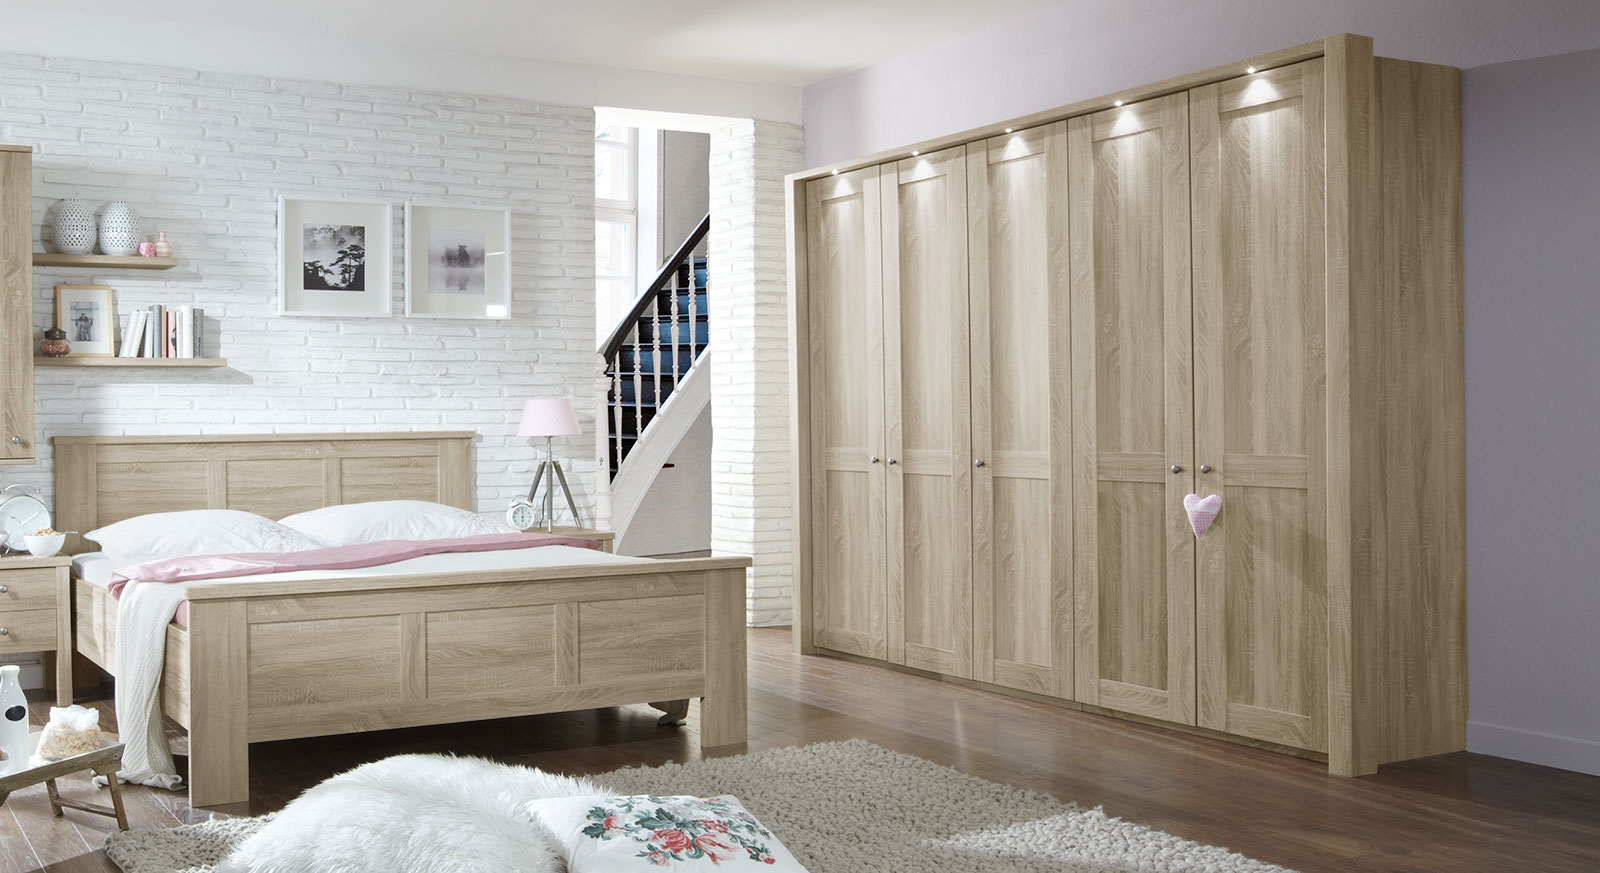 kleiderschrank in eiche s gerau dekor mit beleuchtung farim. Black Bedroom Furniture Sets. Home Design Ideas